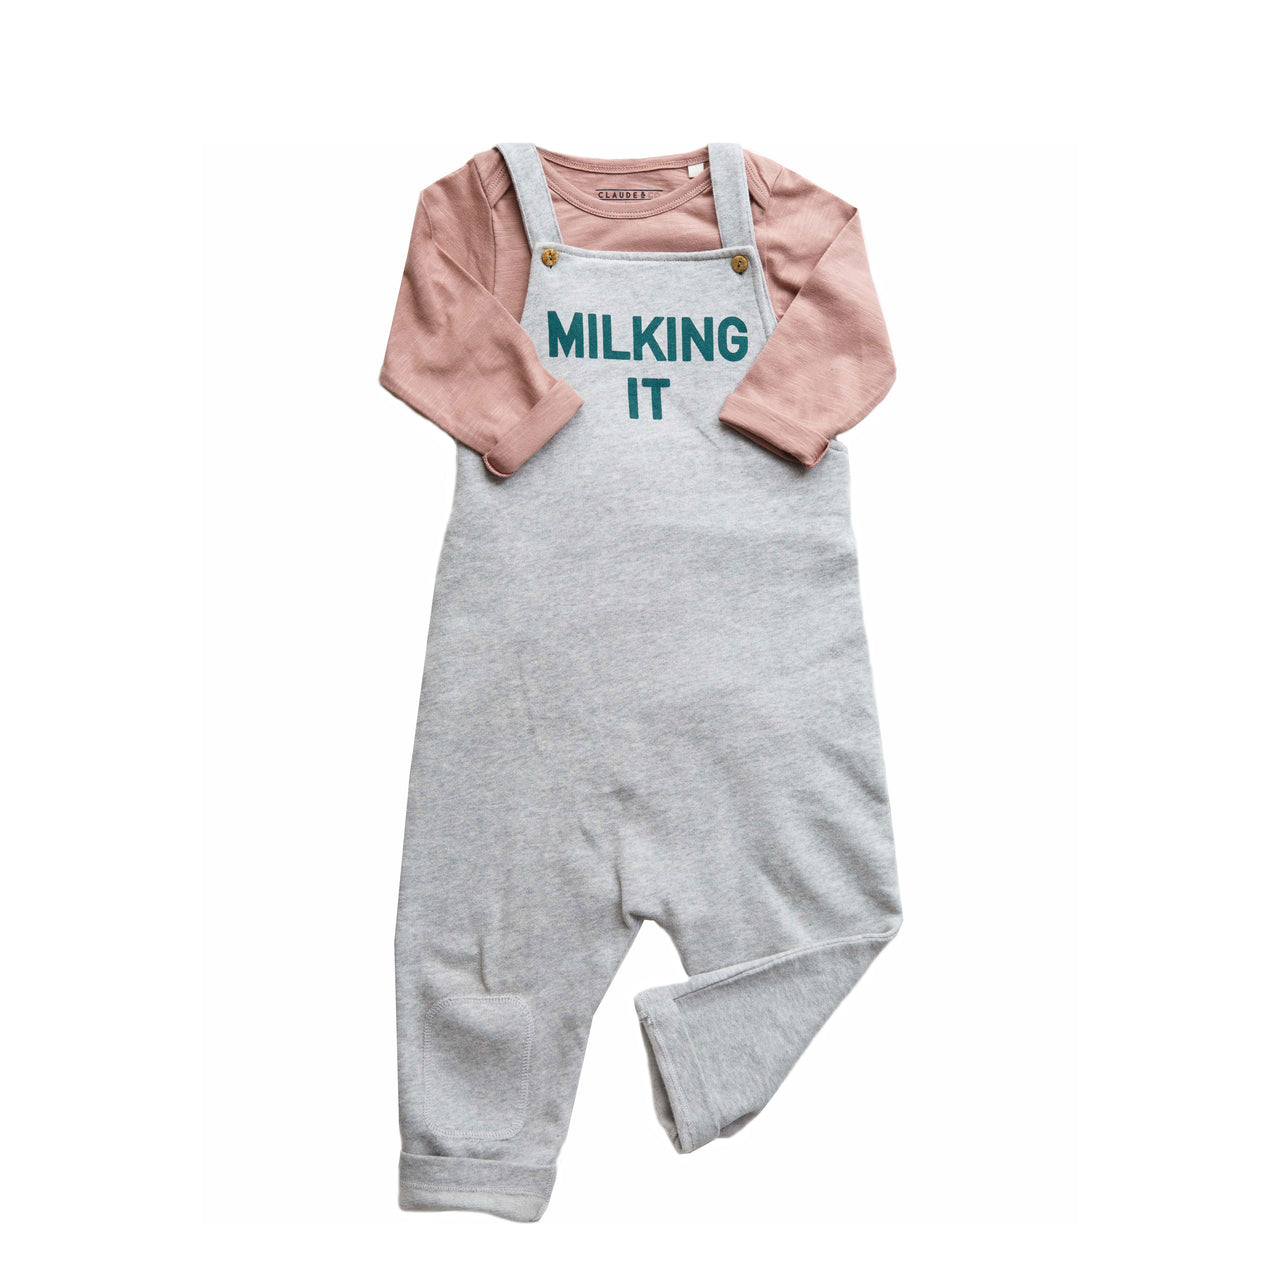 Claude and Co - Milking It Dungaree Grey Unisex - Claude & Co